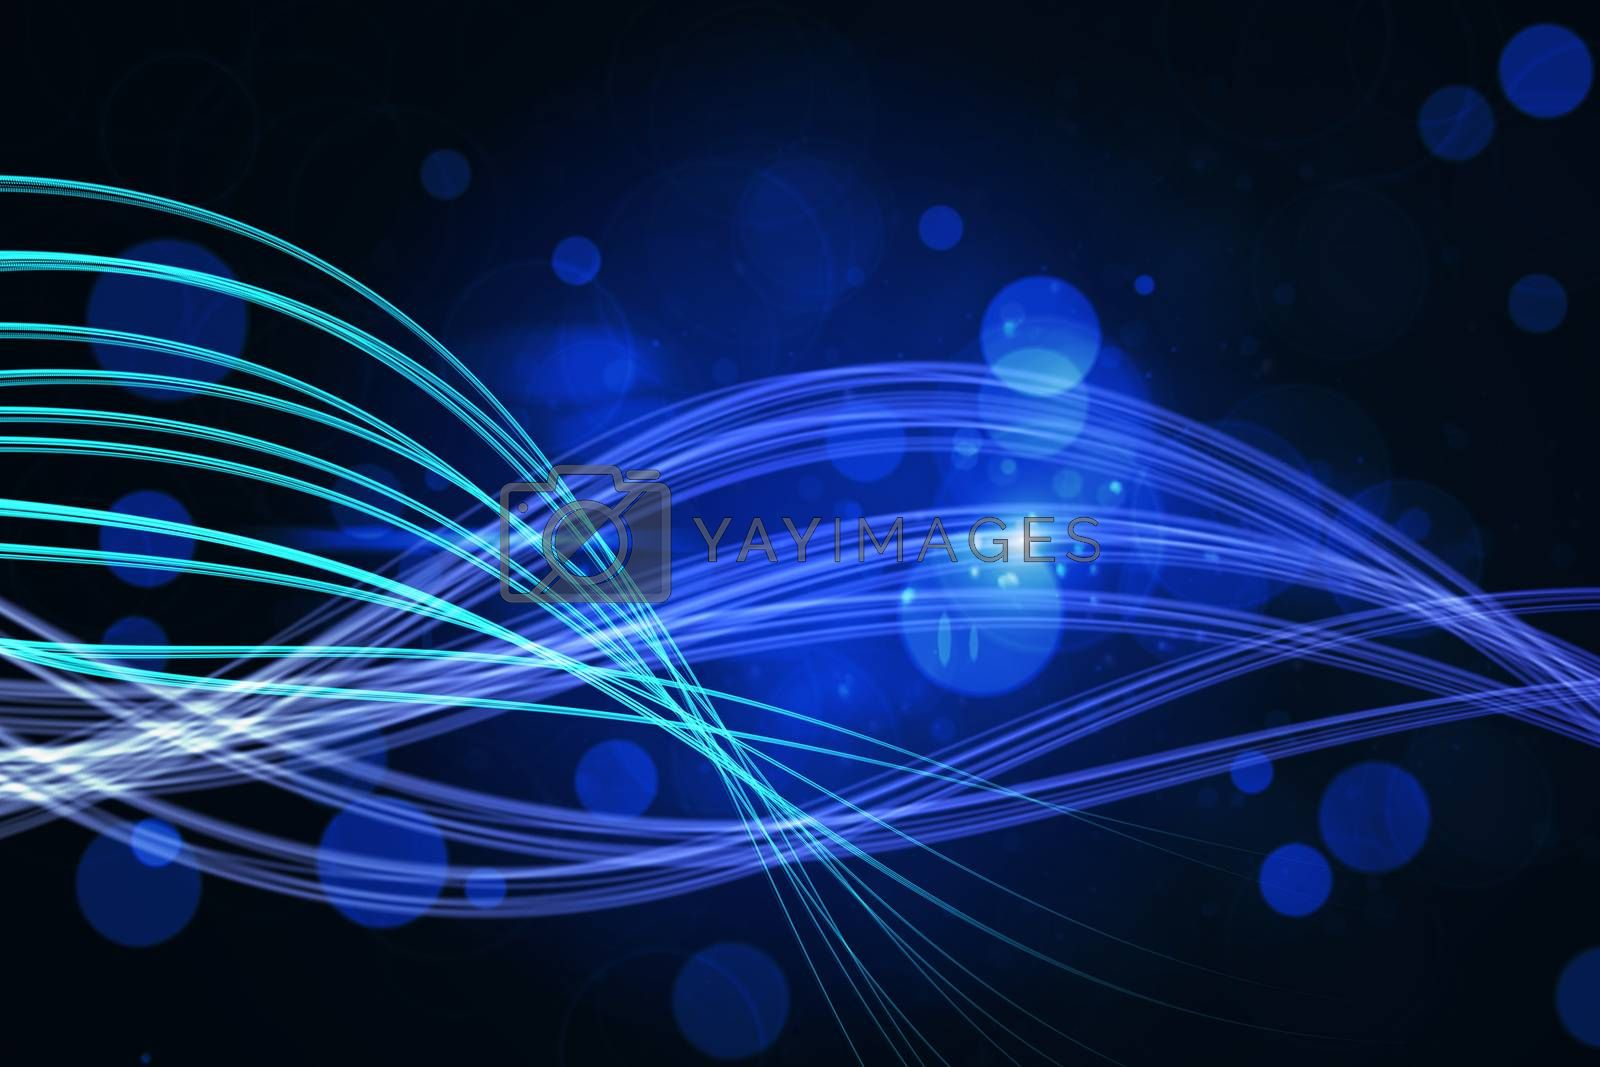 Royalty free image of Curved laser light design in blue  by Wavebreakmedia